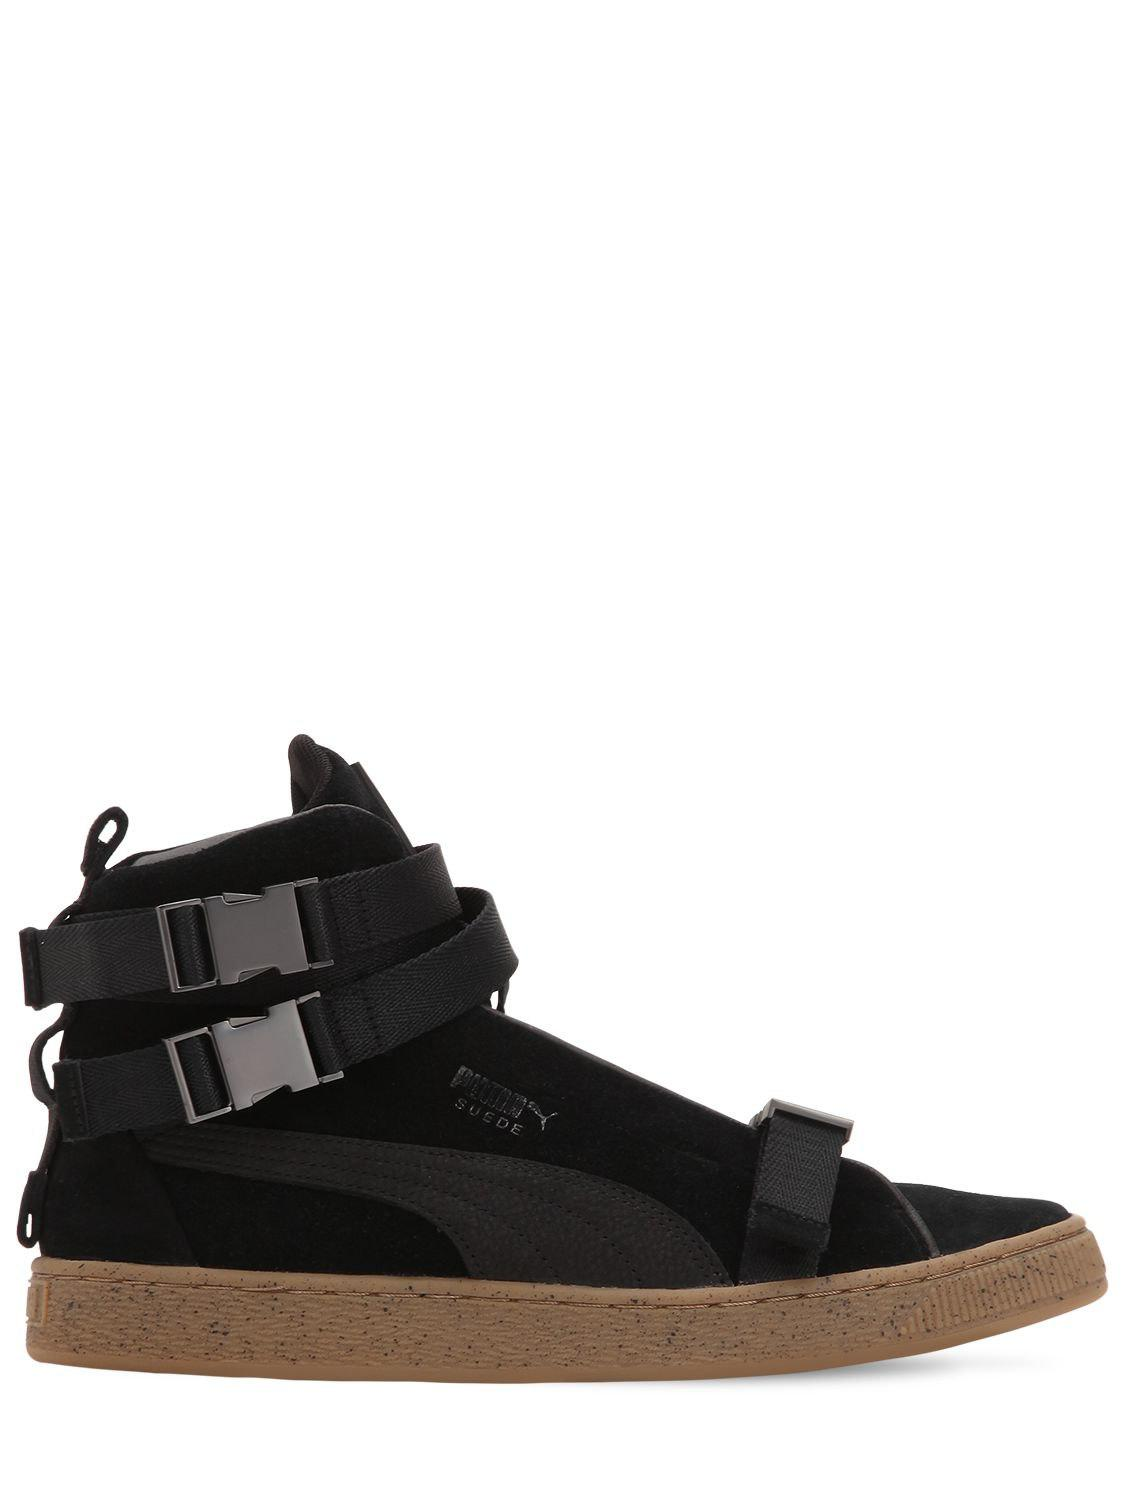 Lyst - Puma Select The Weeknd Suede Classic Sneakers in Black for Men 762bdebfd